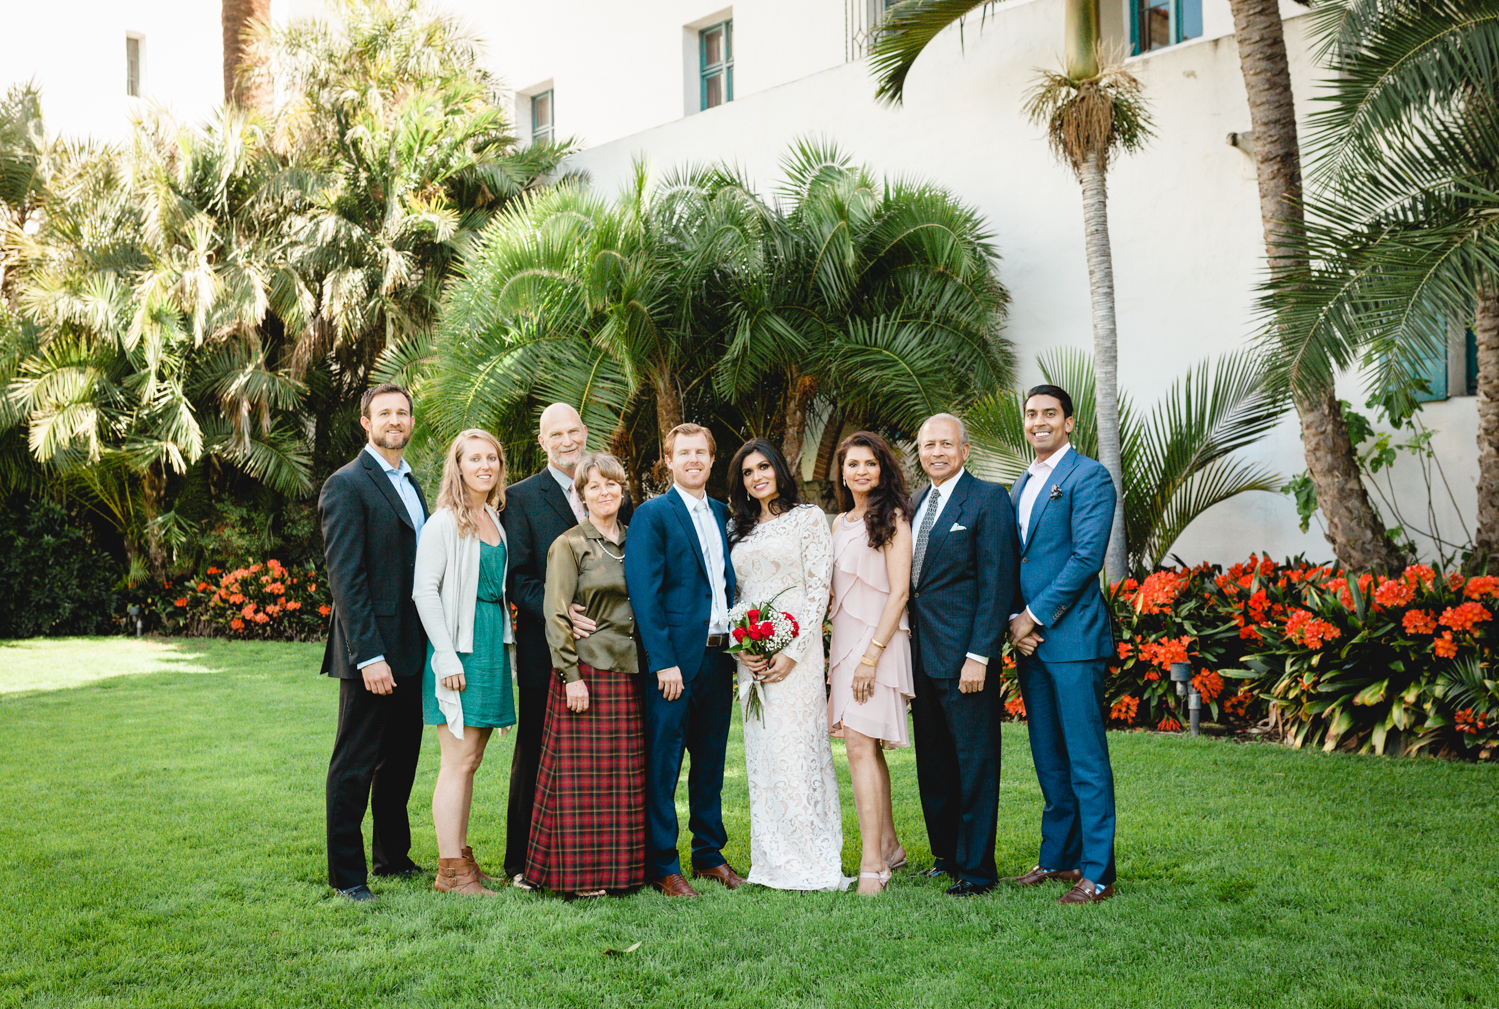 santa barbara courthouse wedding photography family photos